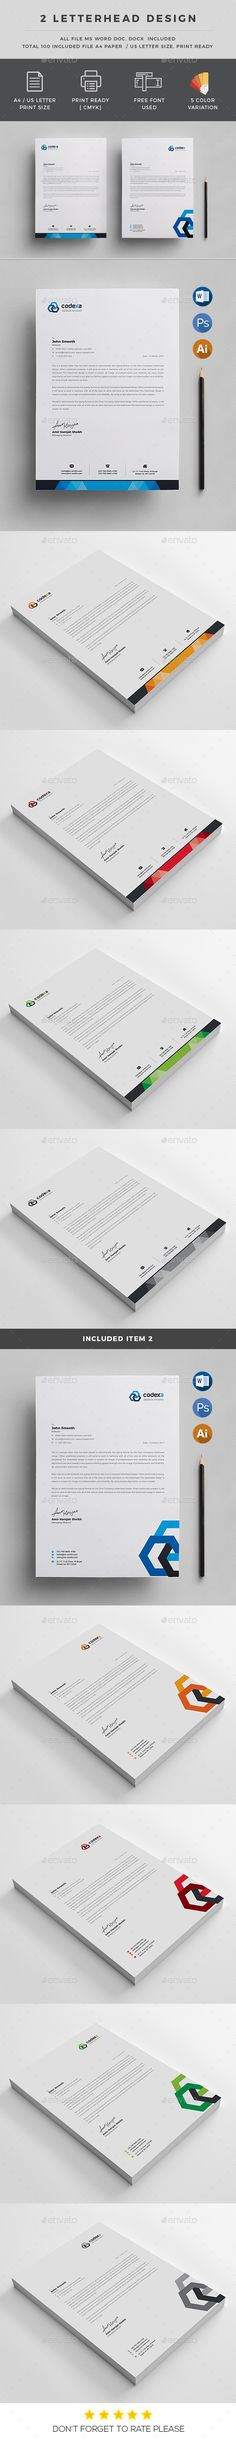 Corporate Letterhead Design Template - Stationery Print Design Templates PSD, Vector EPS, AI Illustrator. Download here: https://graphicriver.net/item/corporate-letterhead/19362613?ref=yinkira